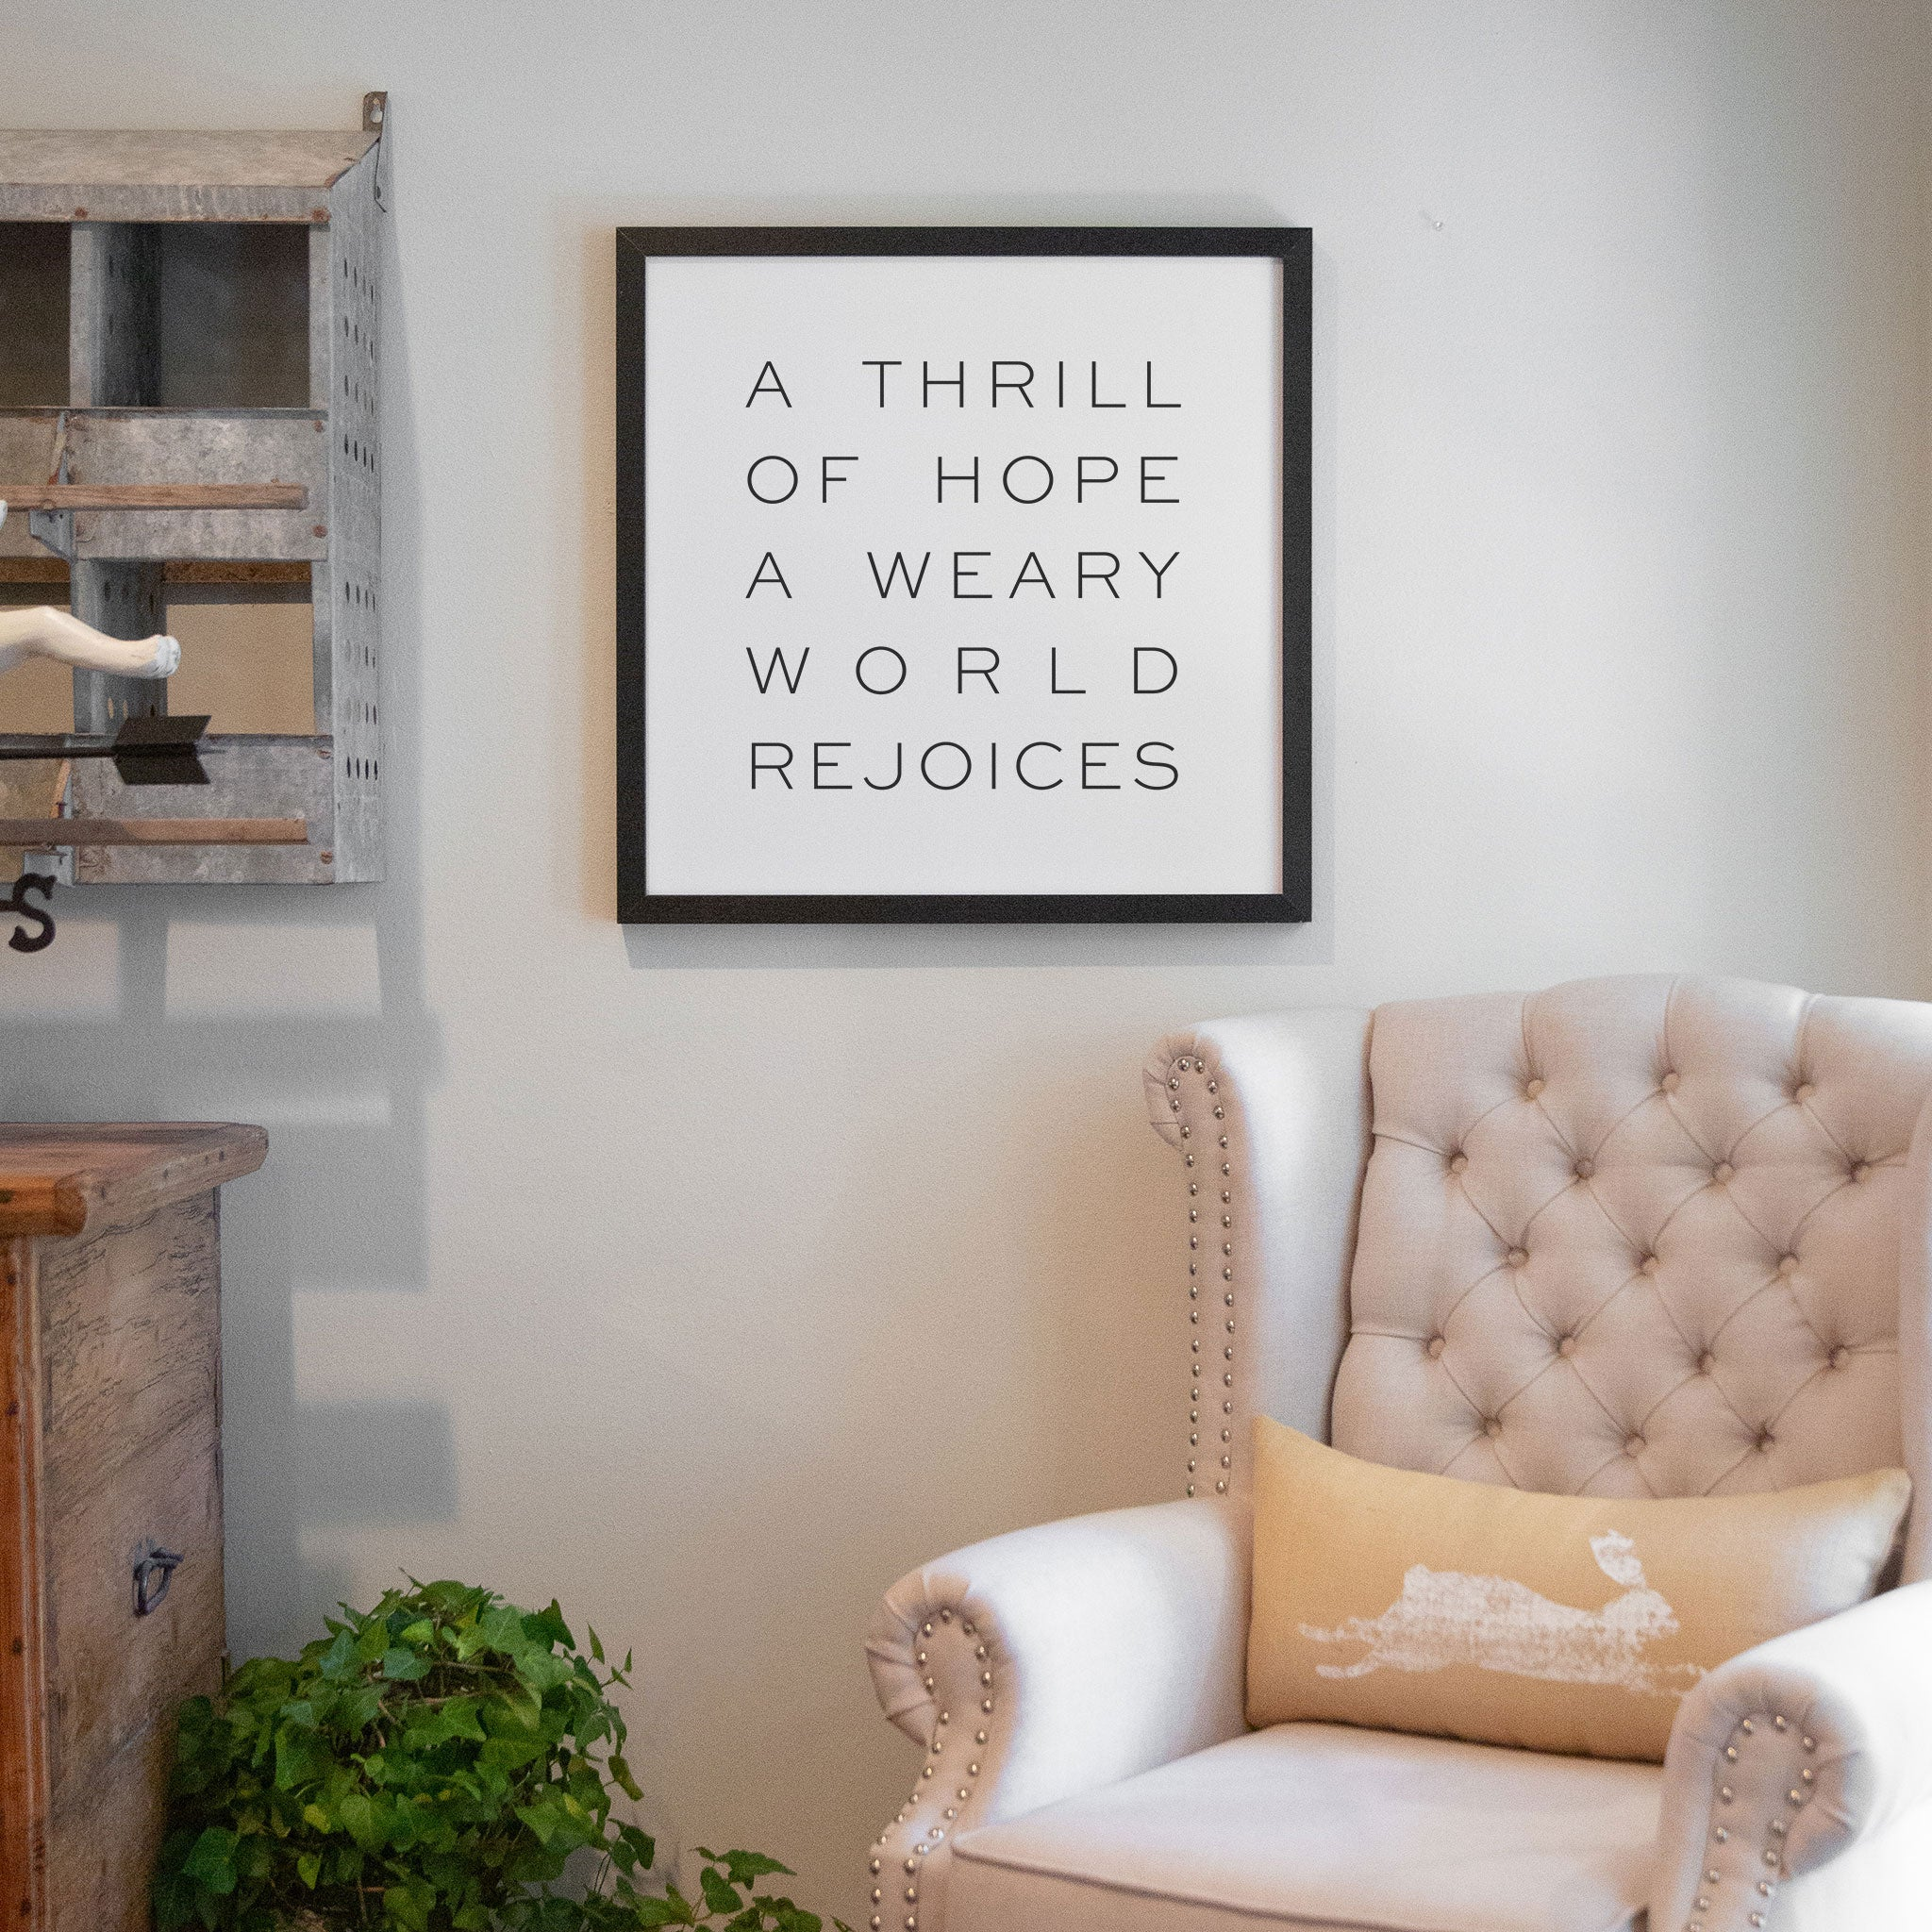 A Thrill of Hope [Block Font] | Smallwoods